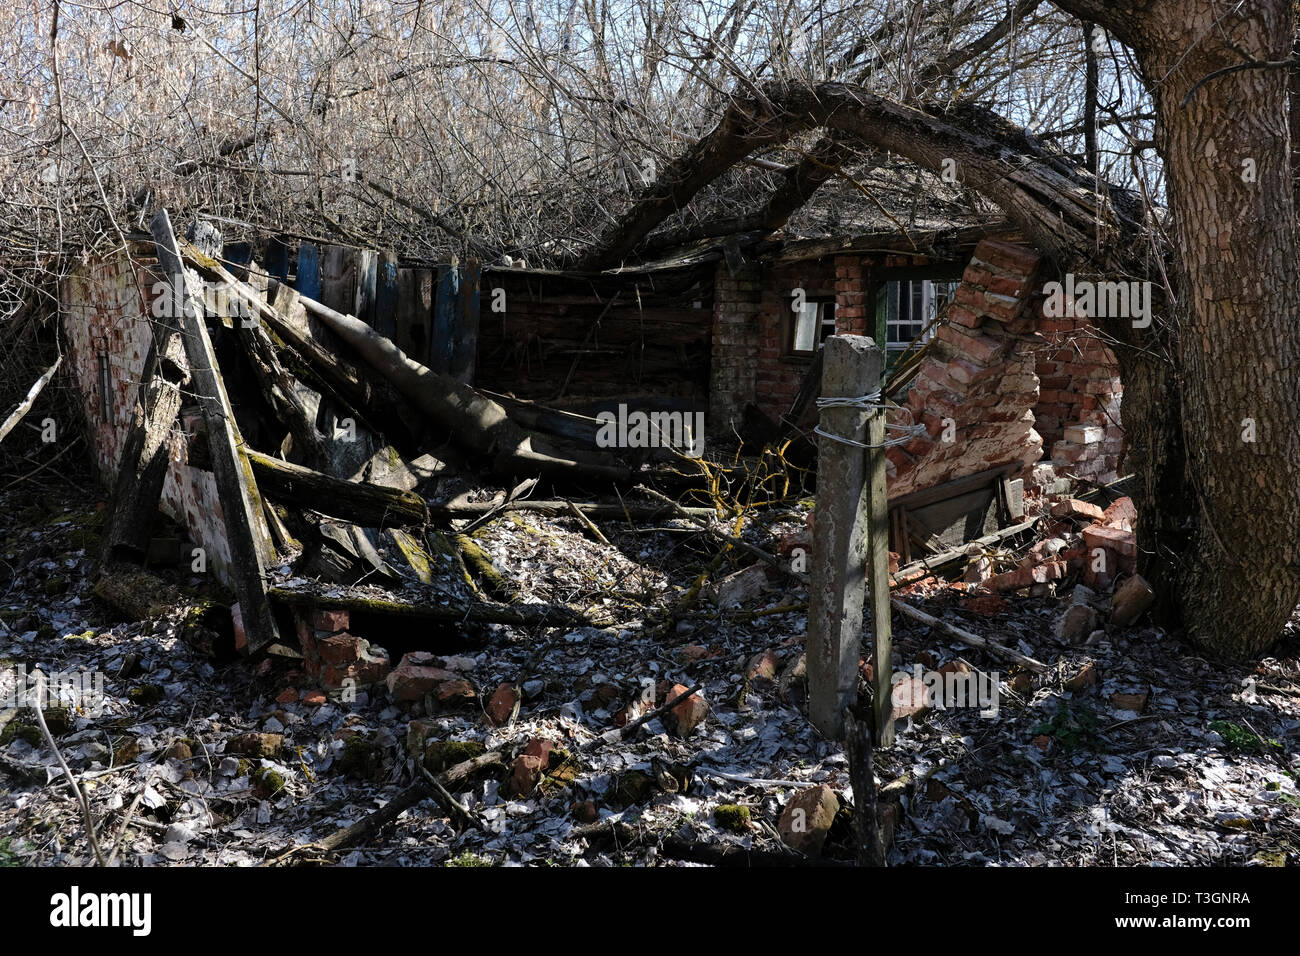 Crumbled village house in the village of Zalissia, inside the Chernobyl exclusion zone - Stock Image